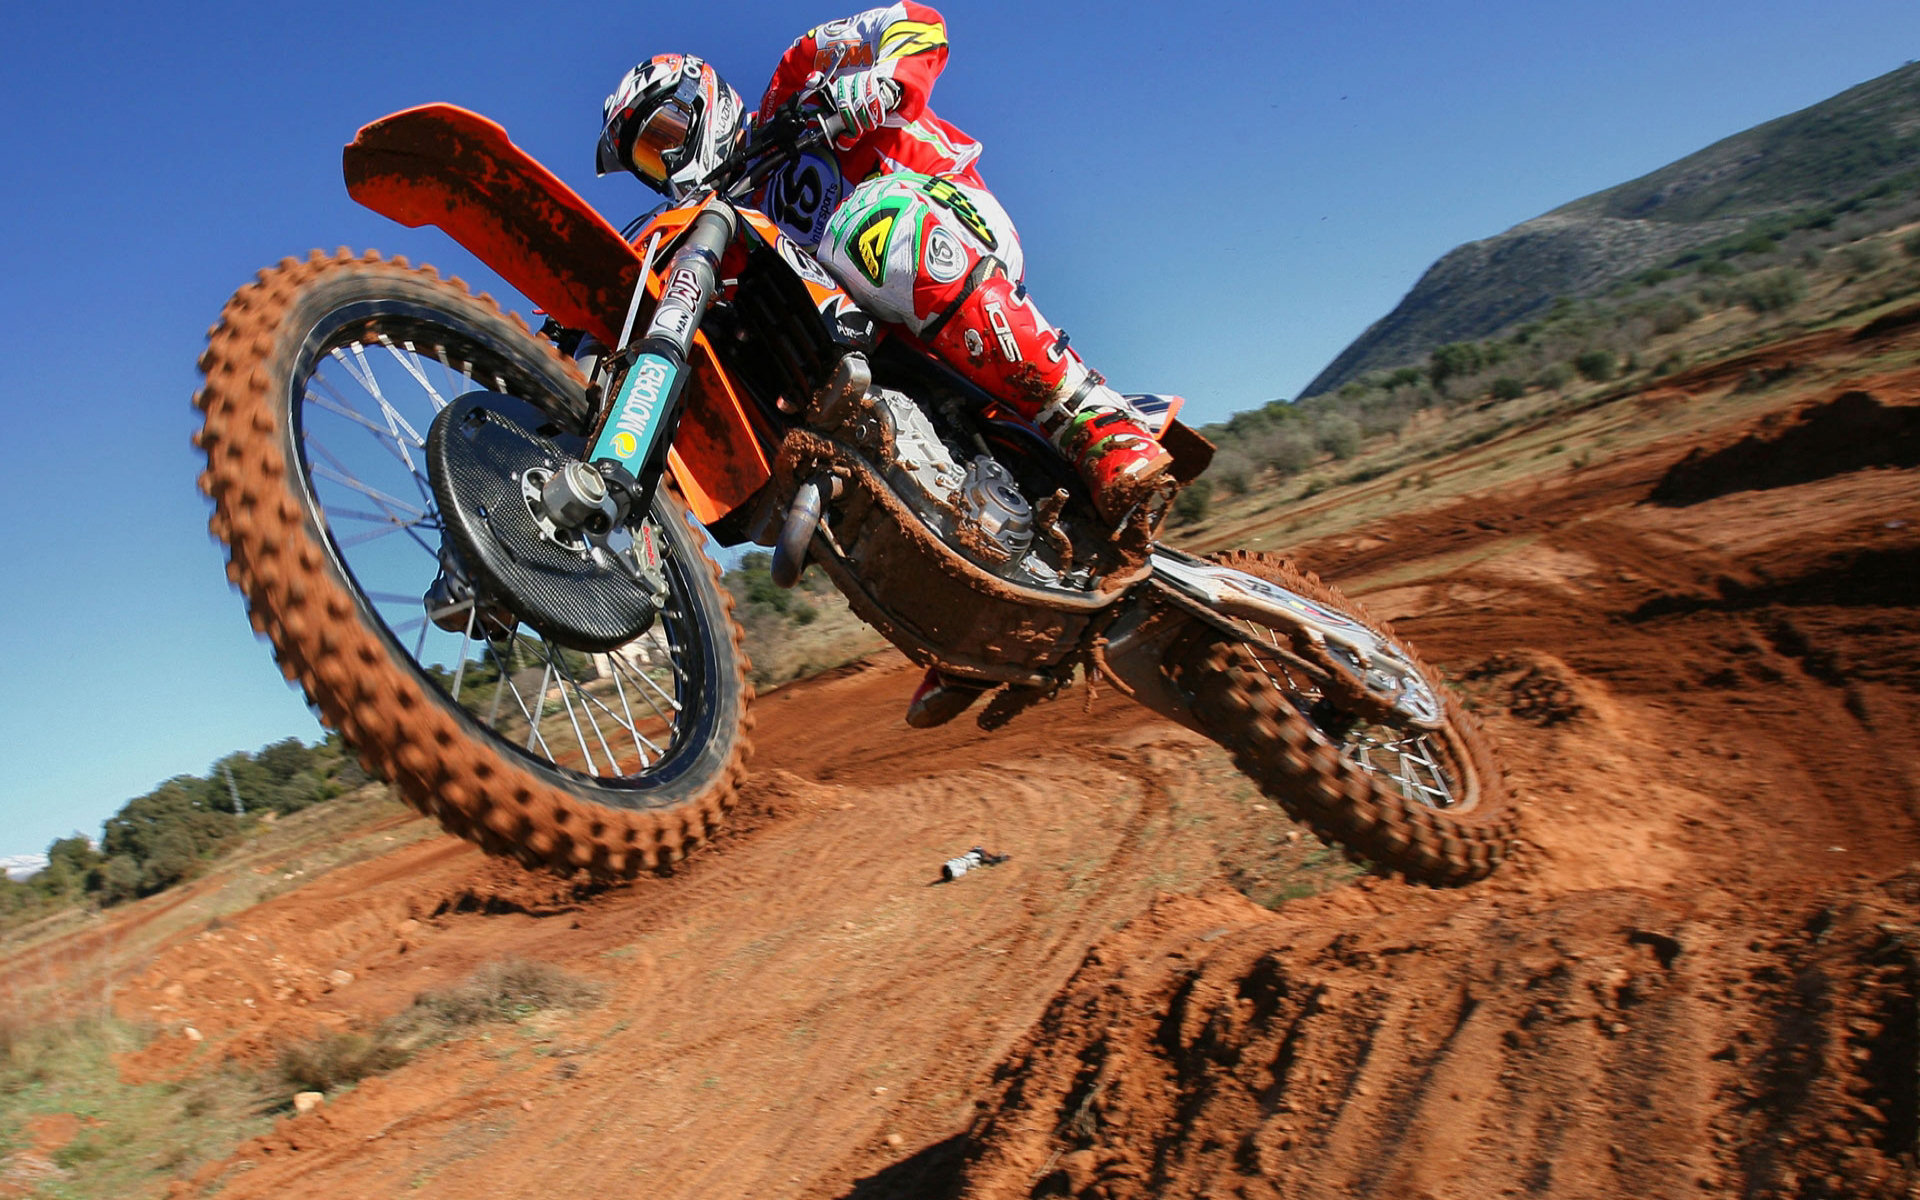 Dirt Bike Exclusive HD Wallpapers 2721 1920x1200